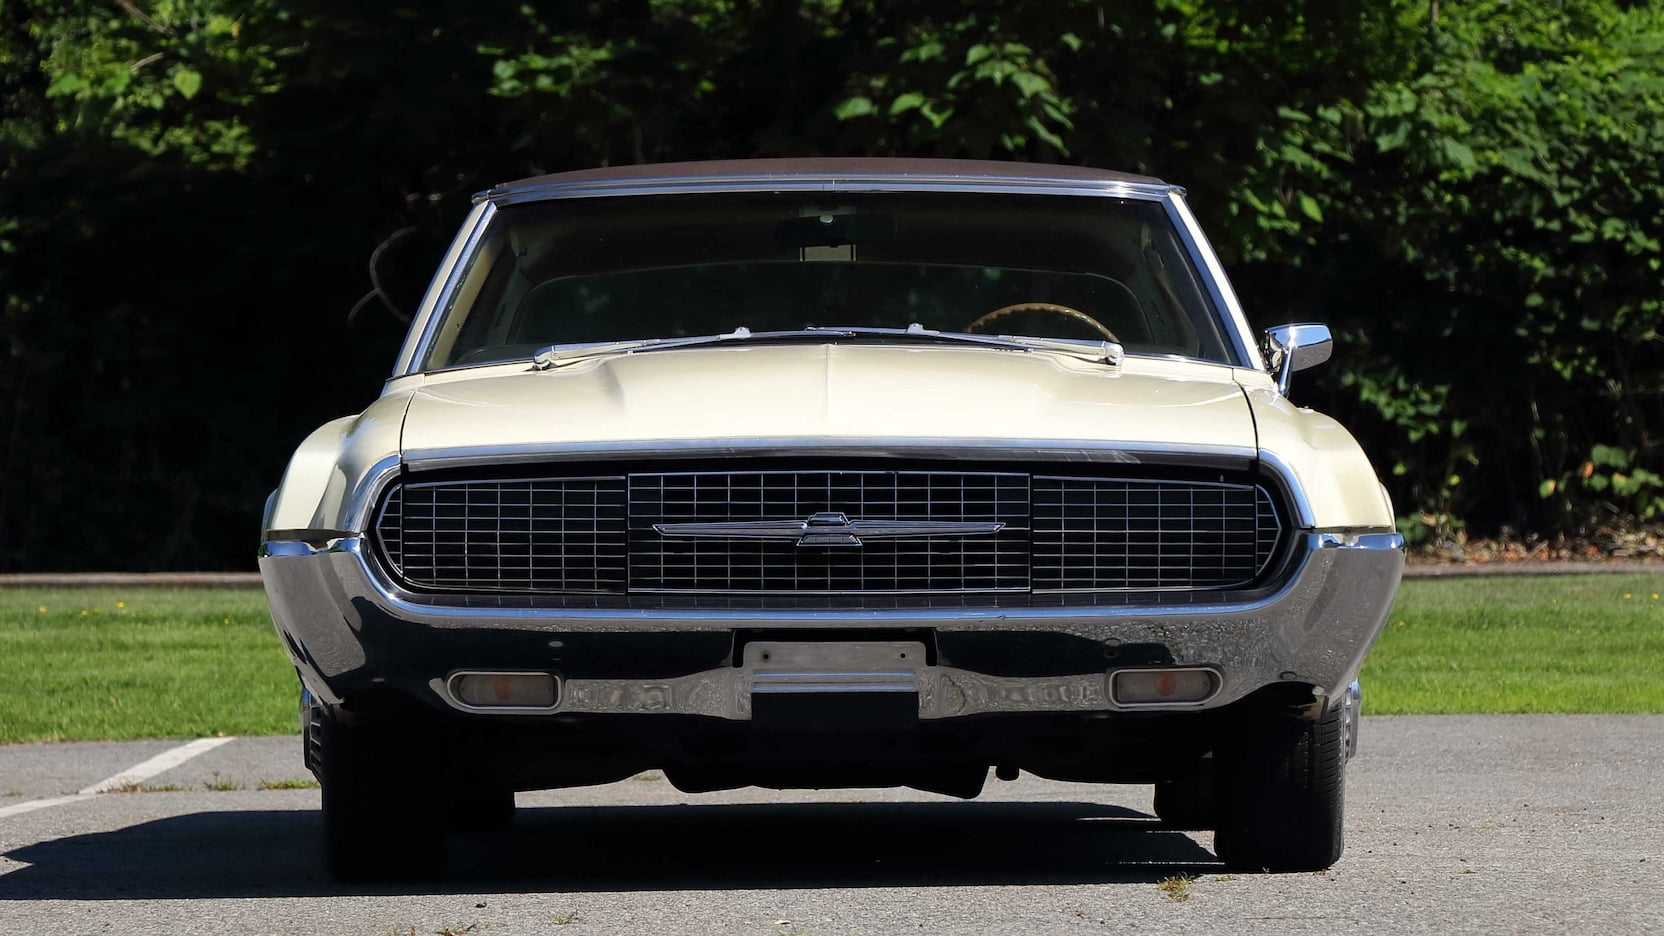 1967 Ford Thunderbird front